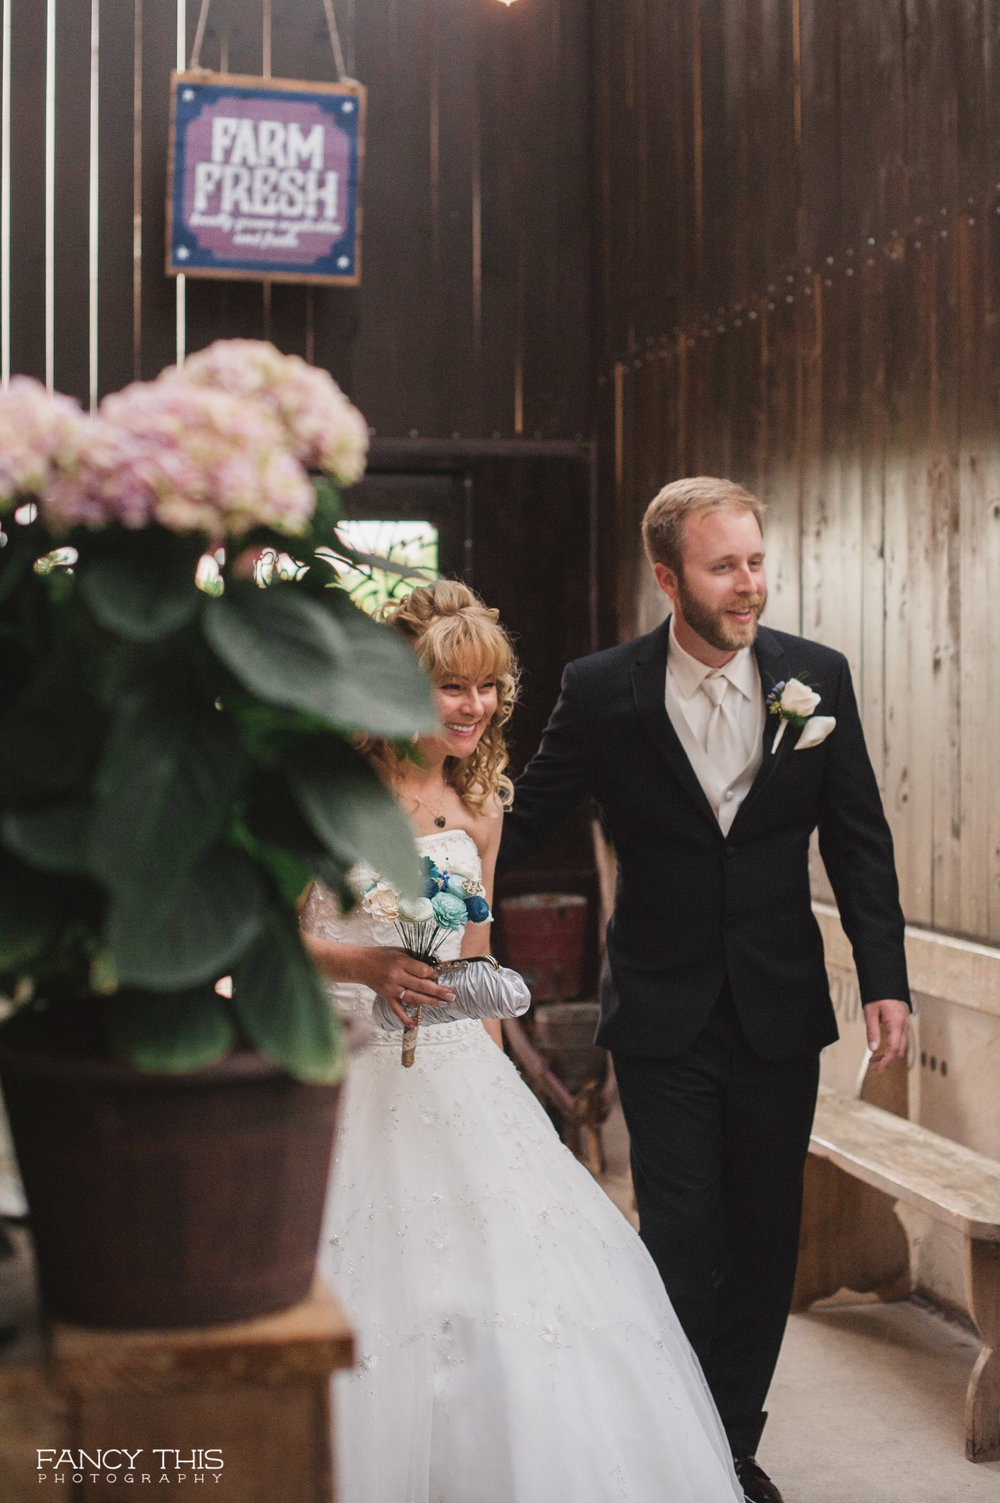 courtneyjasonwedding_socialmediaready167.jpg